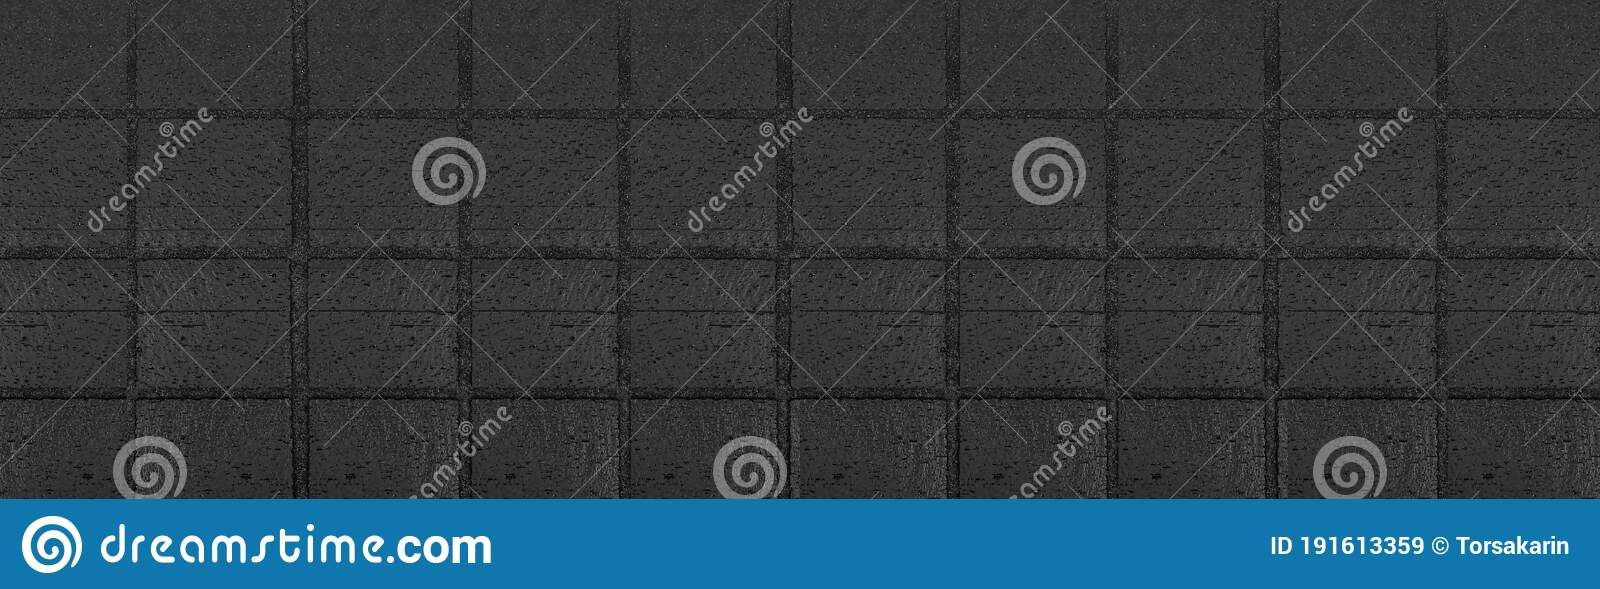 exterior black terracotta tiles floor texture and seamless background clay tile floor stock illustration illustration of clay marble 191613359